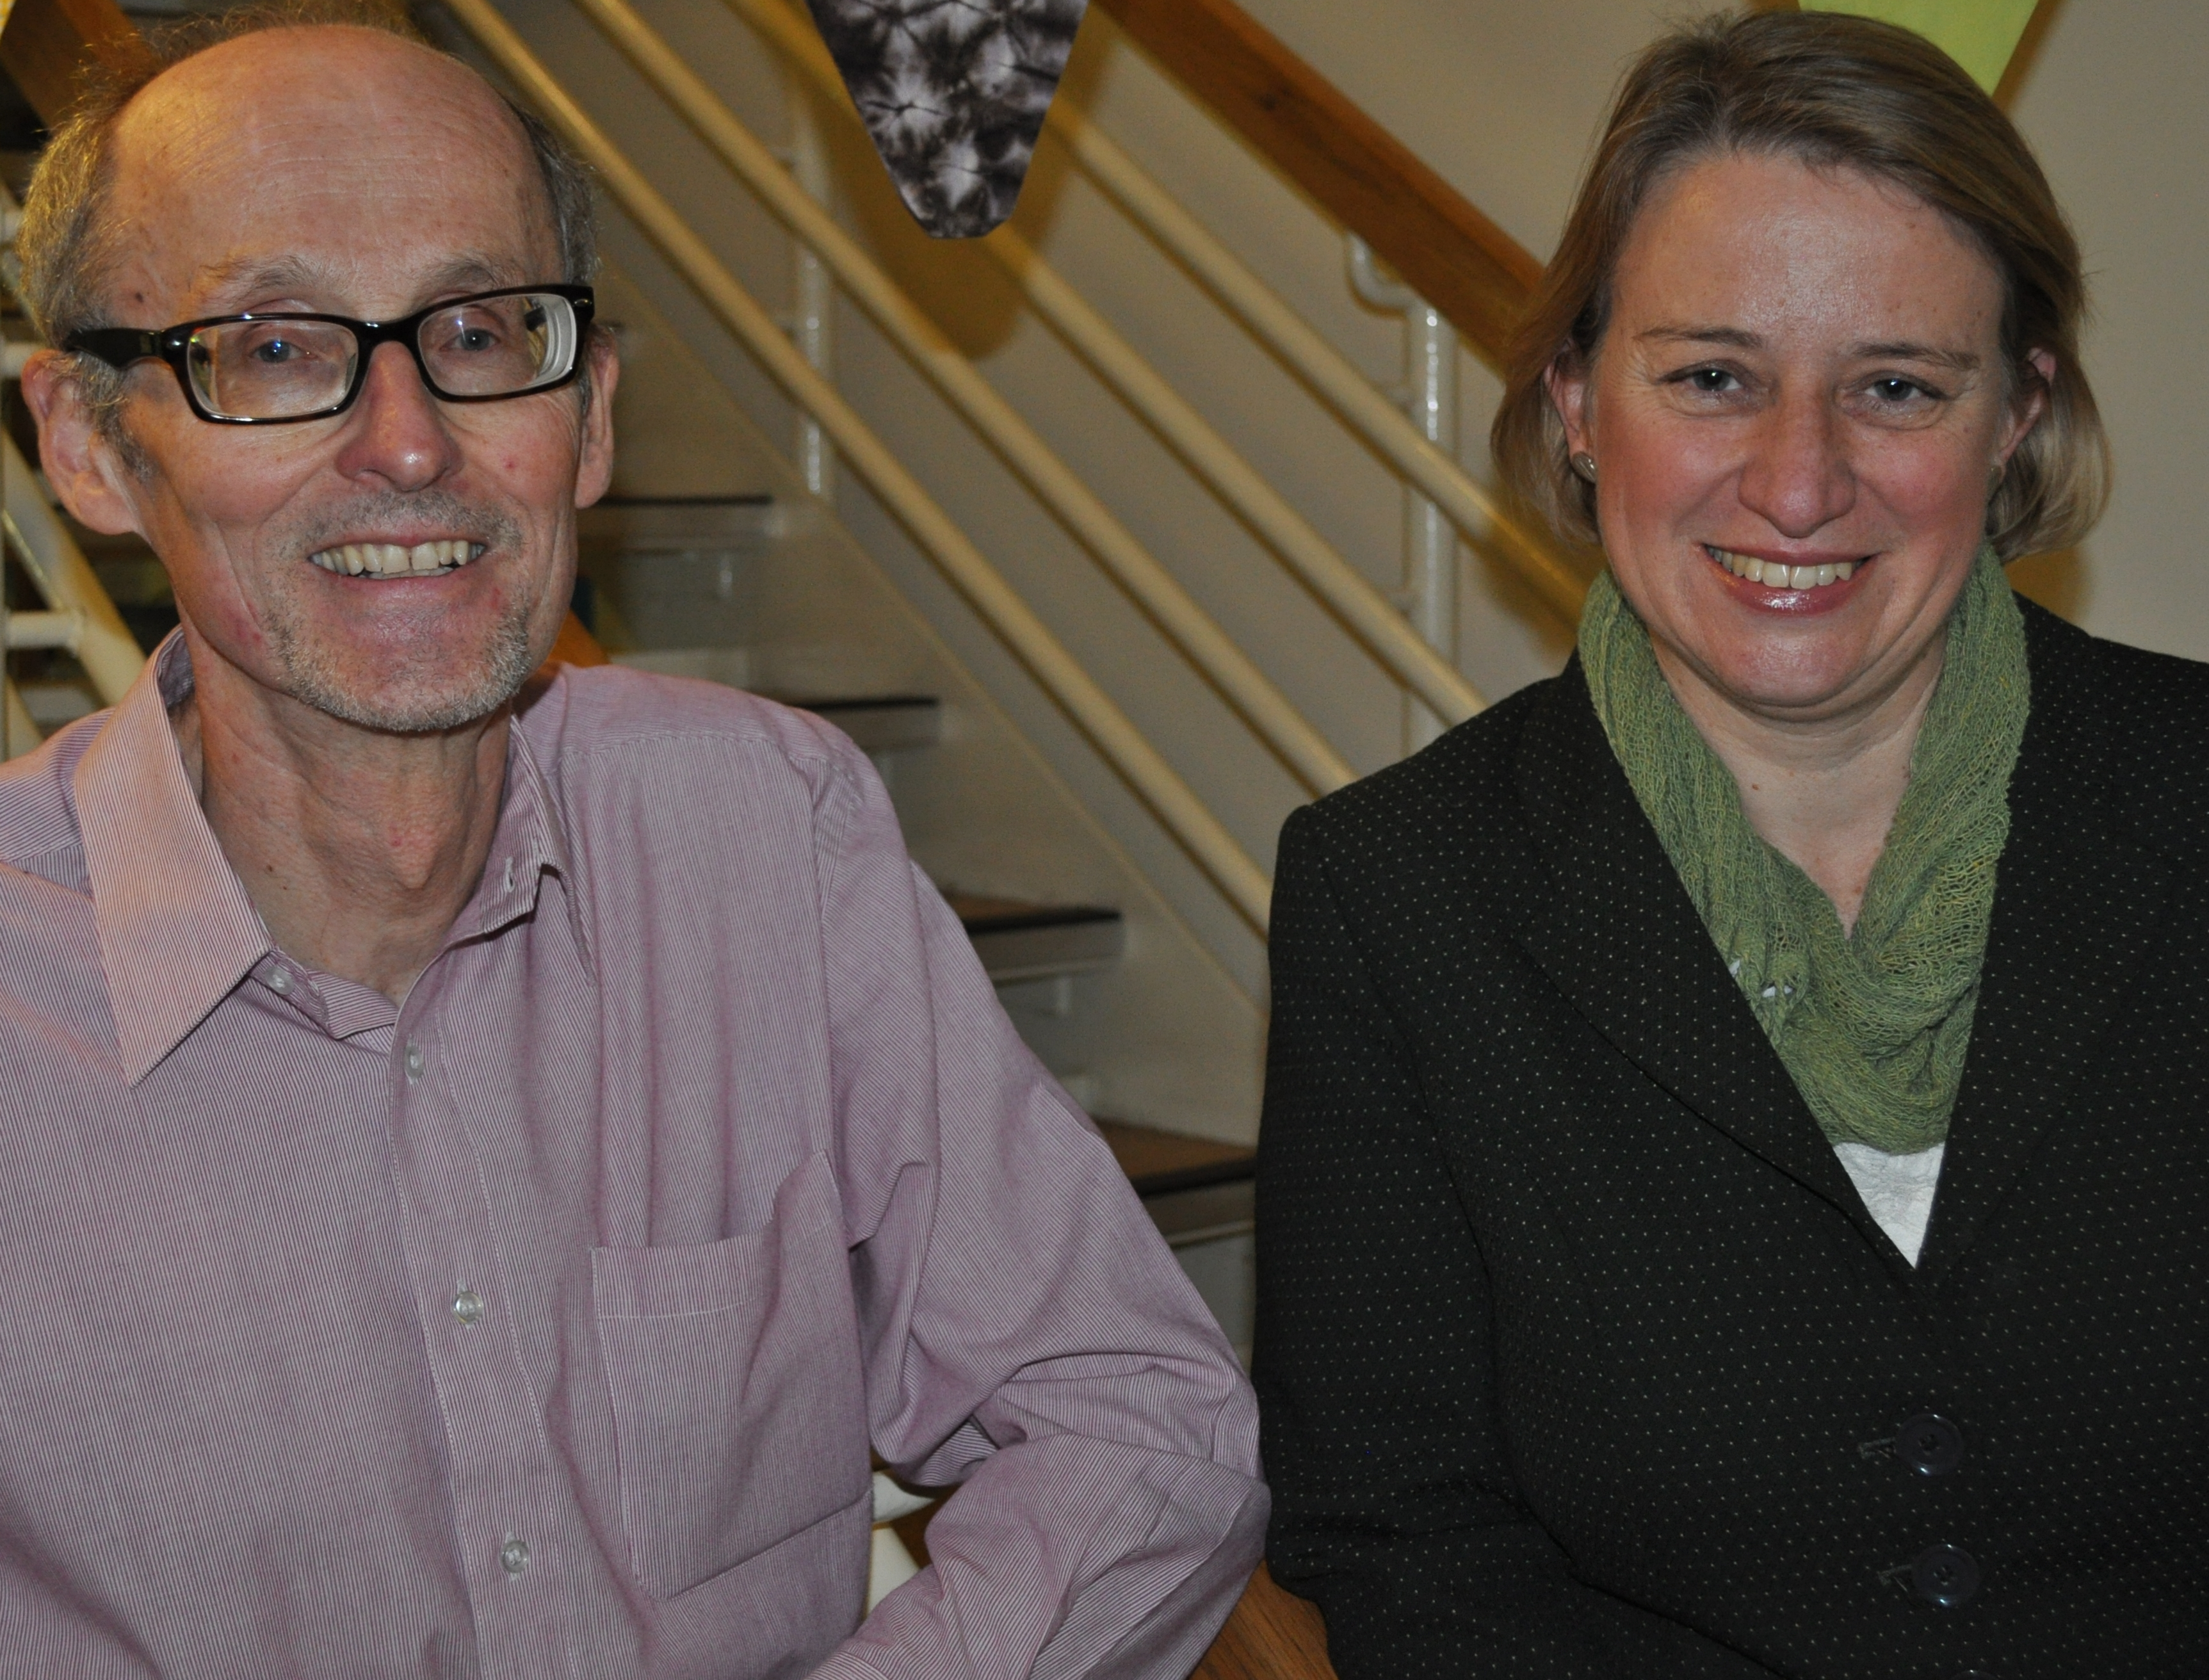 Jon Ashe, Chair of Sheffield Greens, with Natalie Bennett, Leader of Green Party